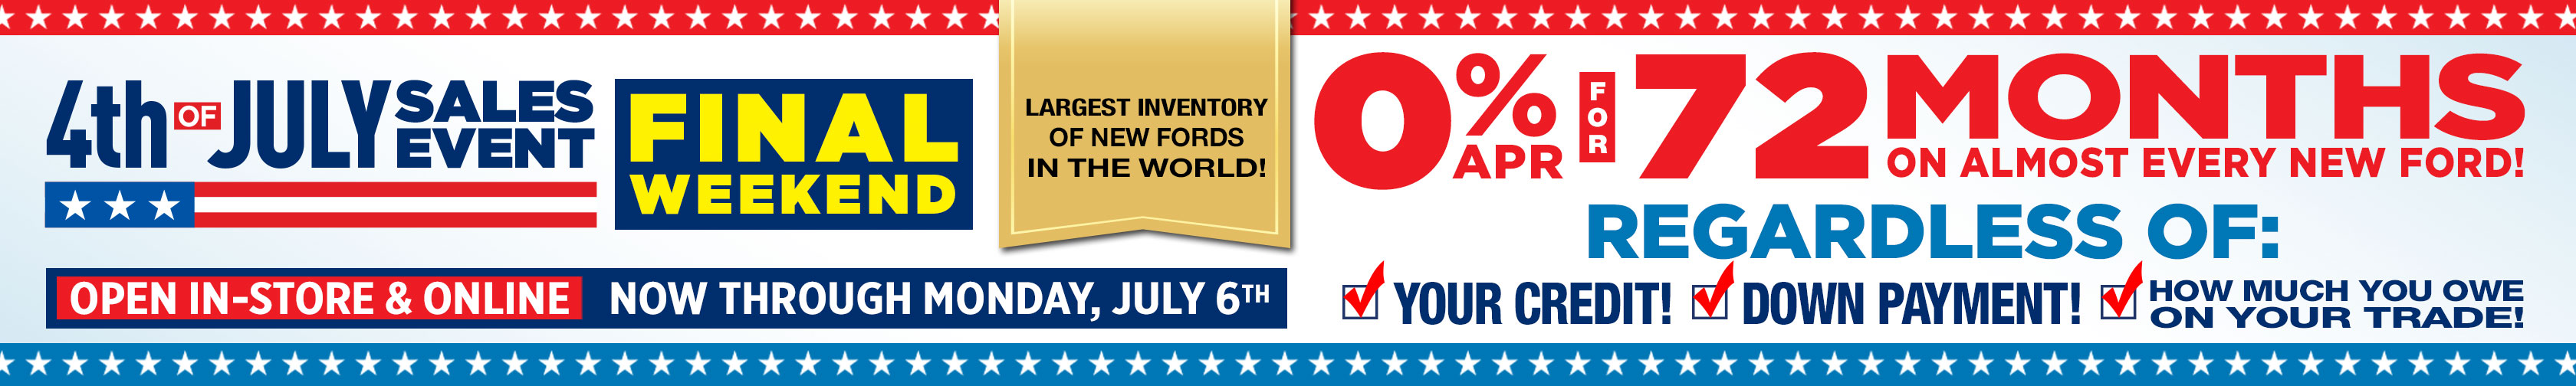 Ford 4thjuly2020 0for72 Srp Fw 3360x504 C1